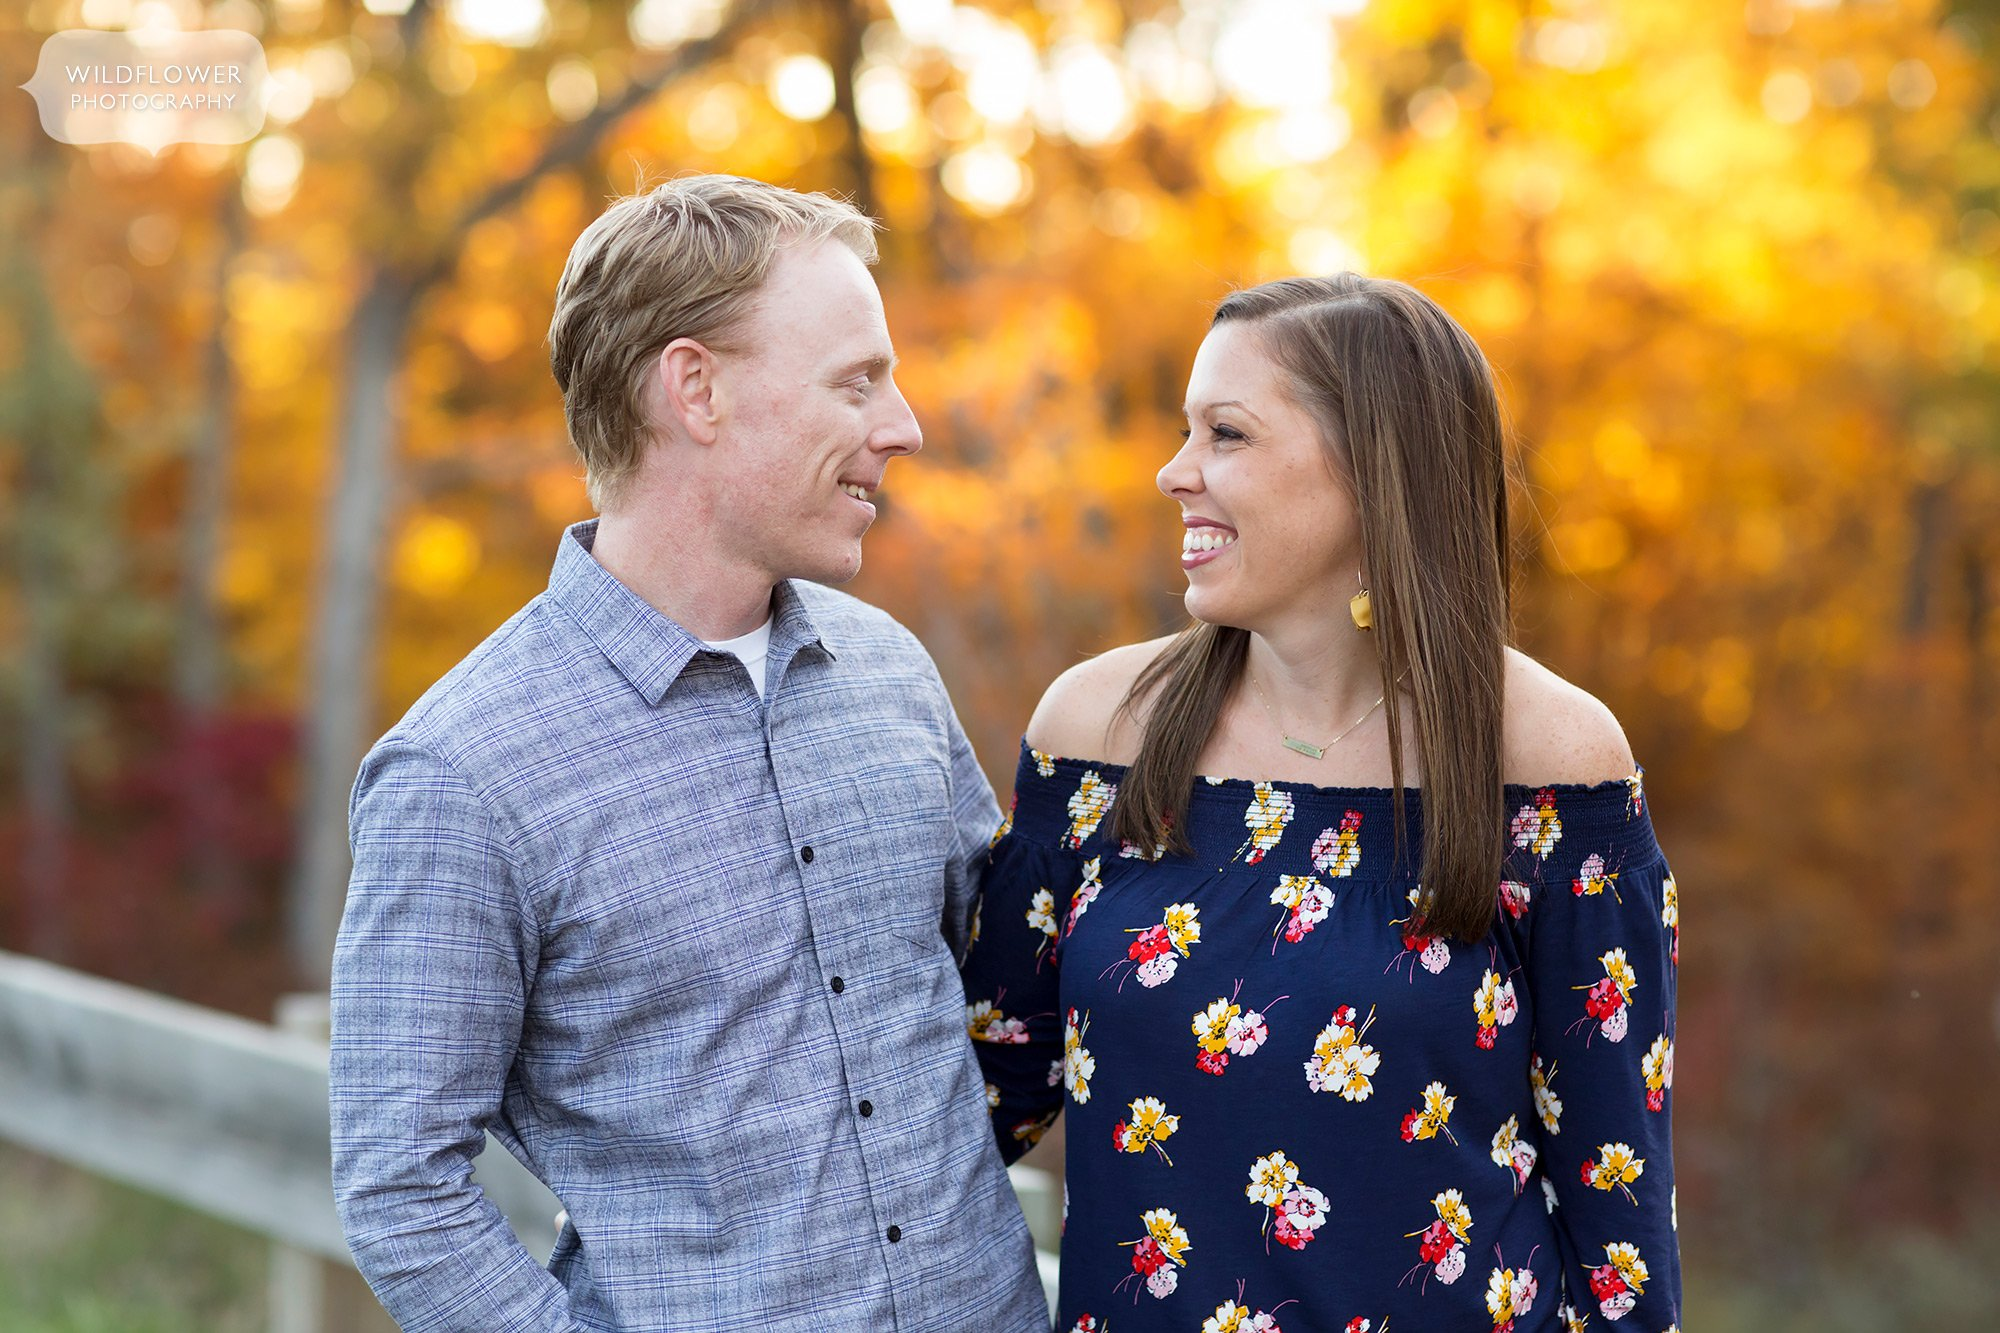 Parents smile at each other during this October family photography session in Columbia, MO.